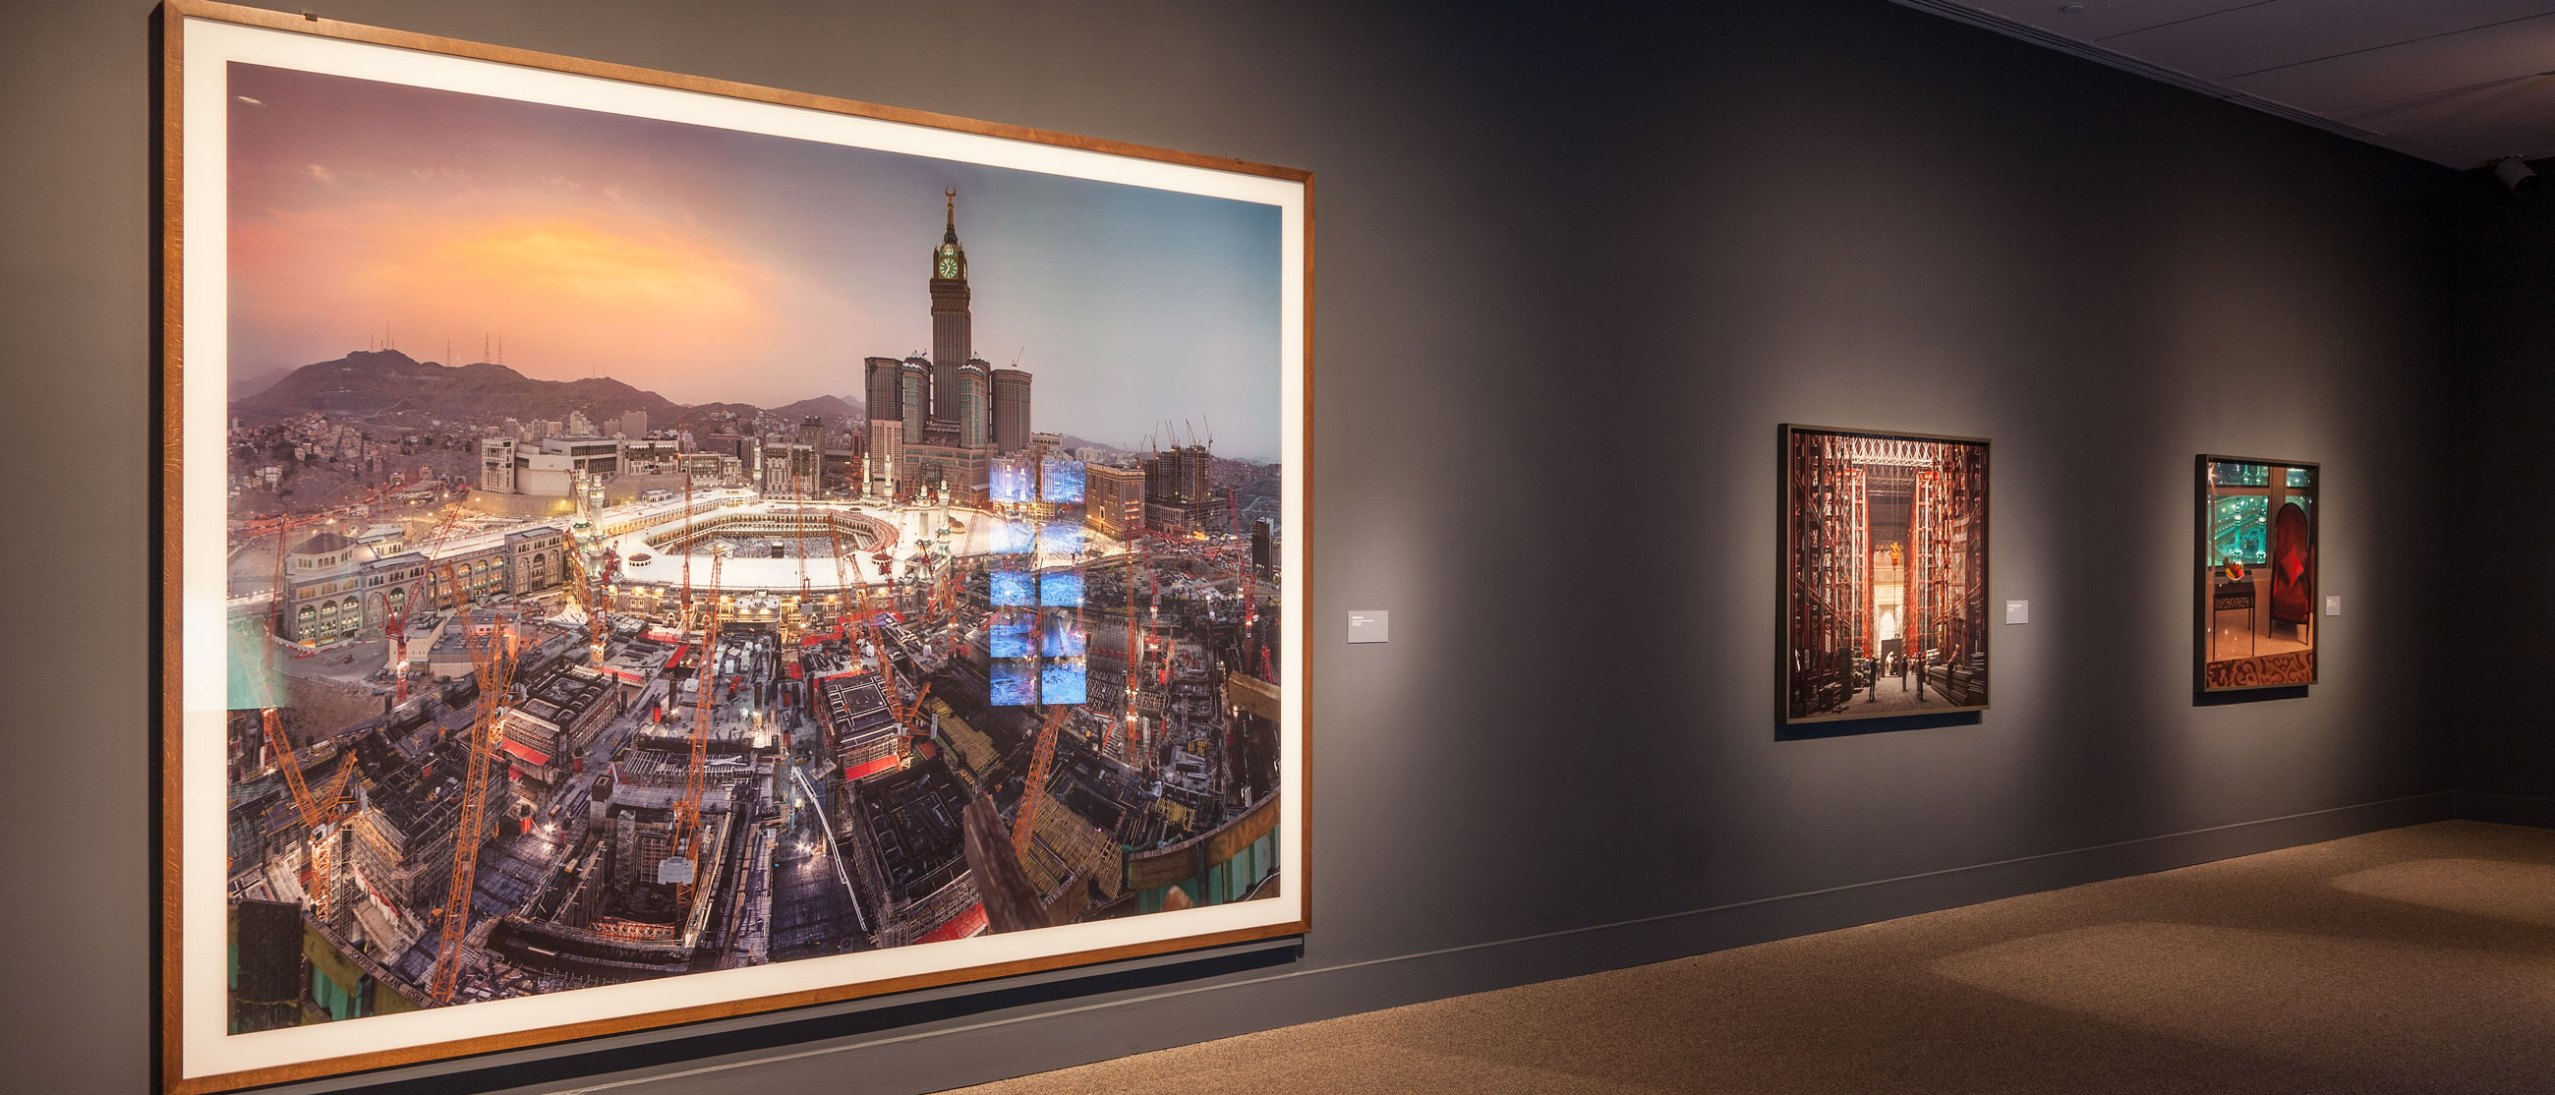 Symbolic Cities: The Work of Ahmed Mater installed in the Sackler Gallery